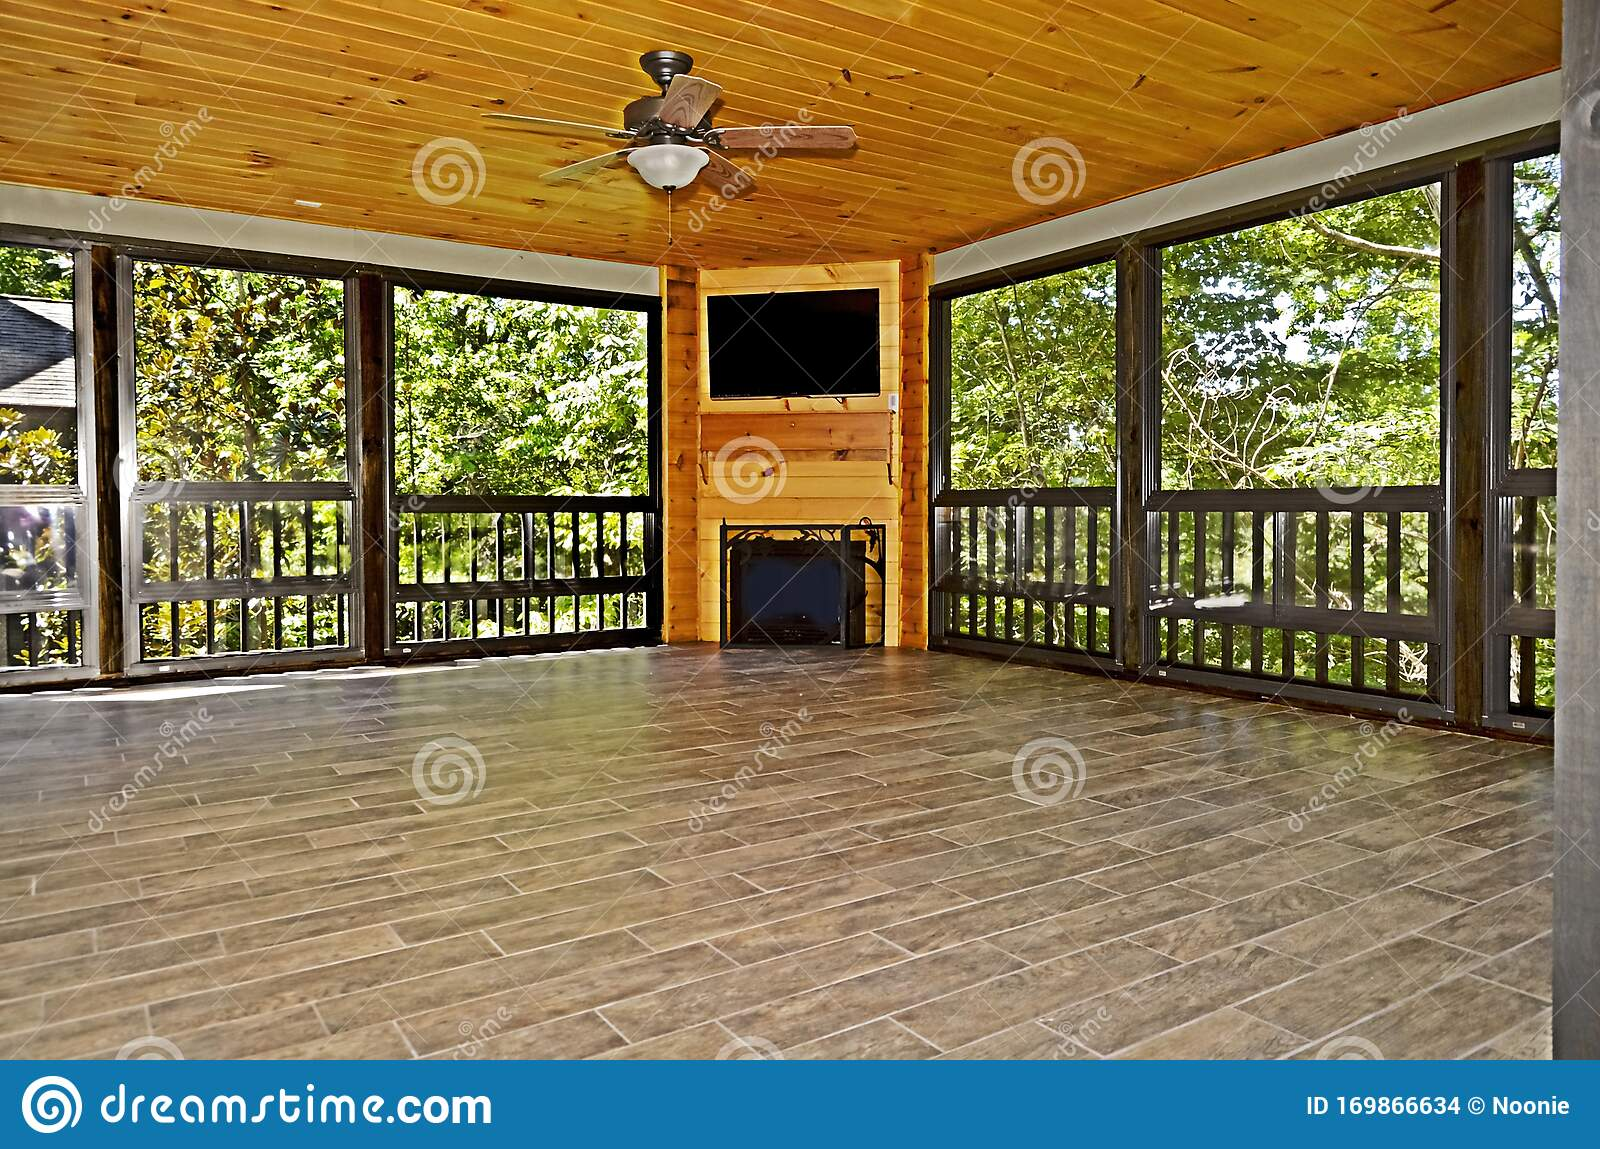 https www dreamstime com all season enclosed porch new screened fireplace wooden ceiling tile floors image169866634